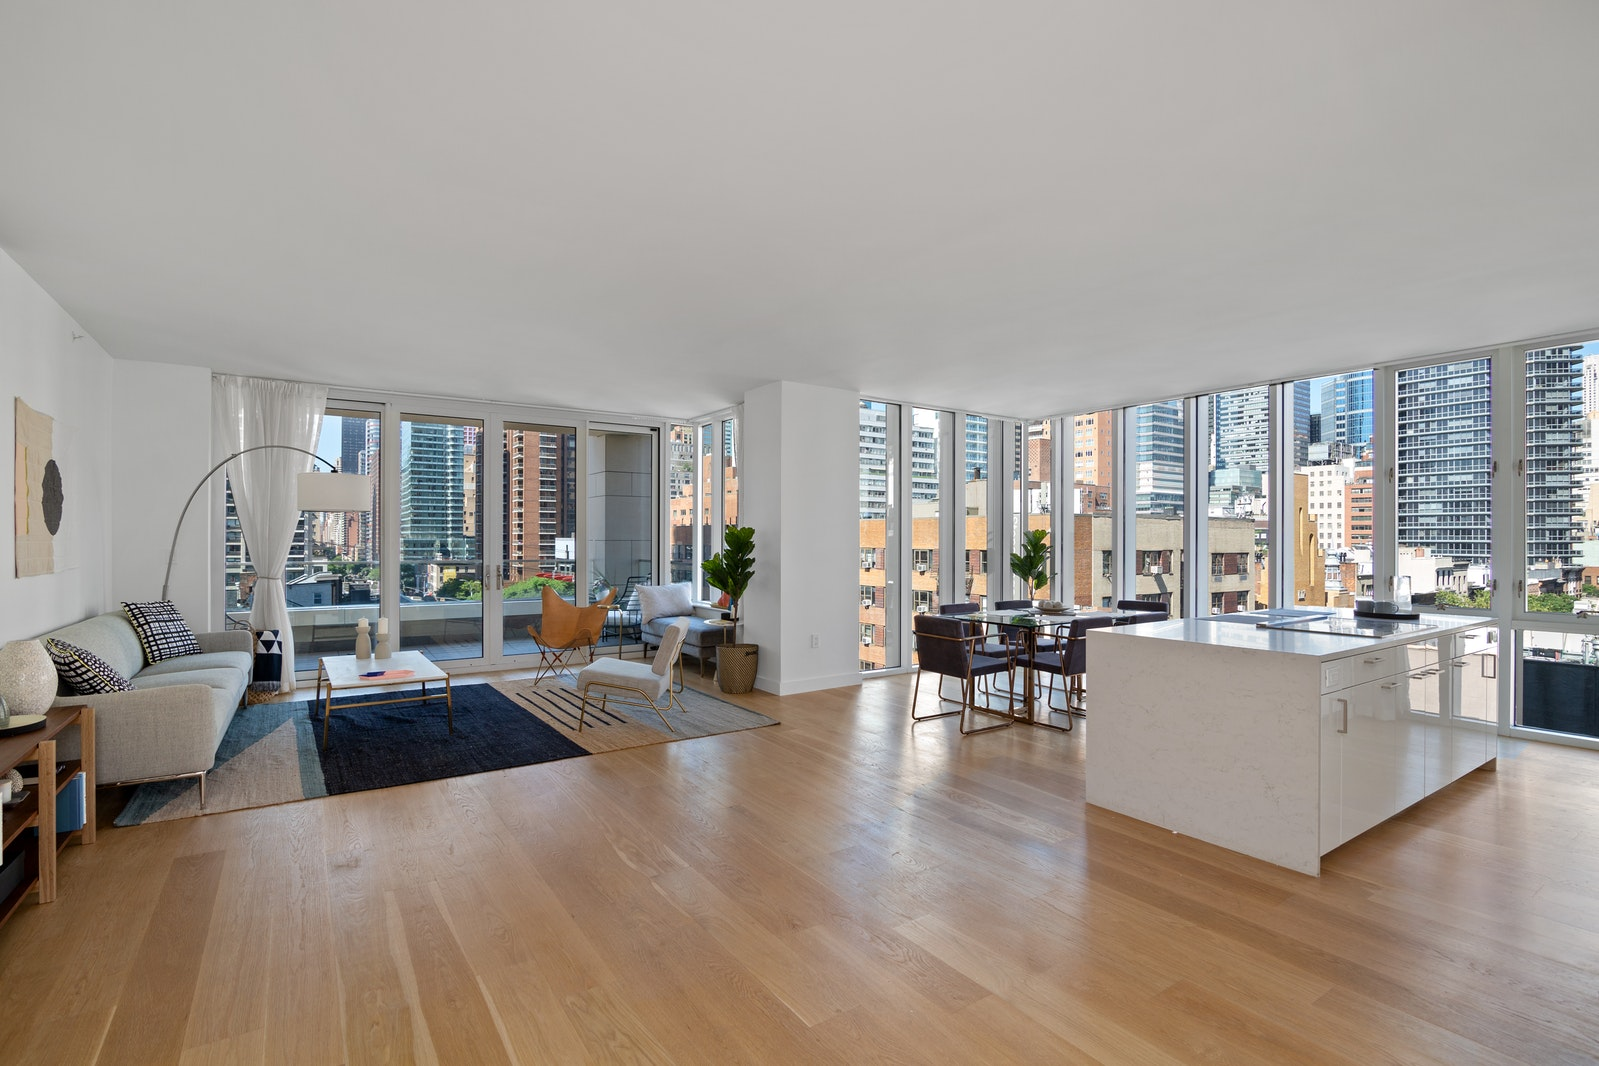 301 East 61st Street 6a, Upper East Side, NYC, 10065, $3,192,000, Property For Sale, Halstead Real Estate, Photo 2